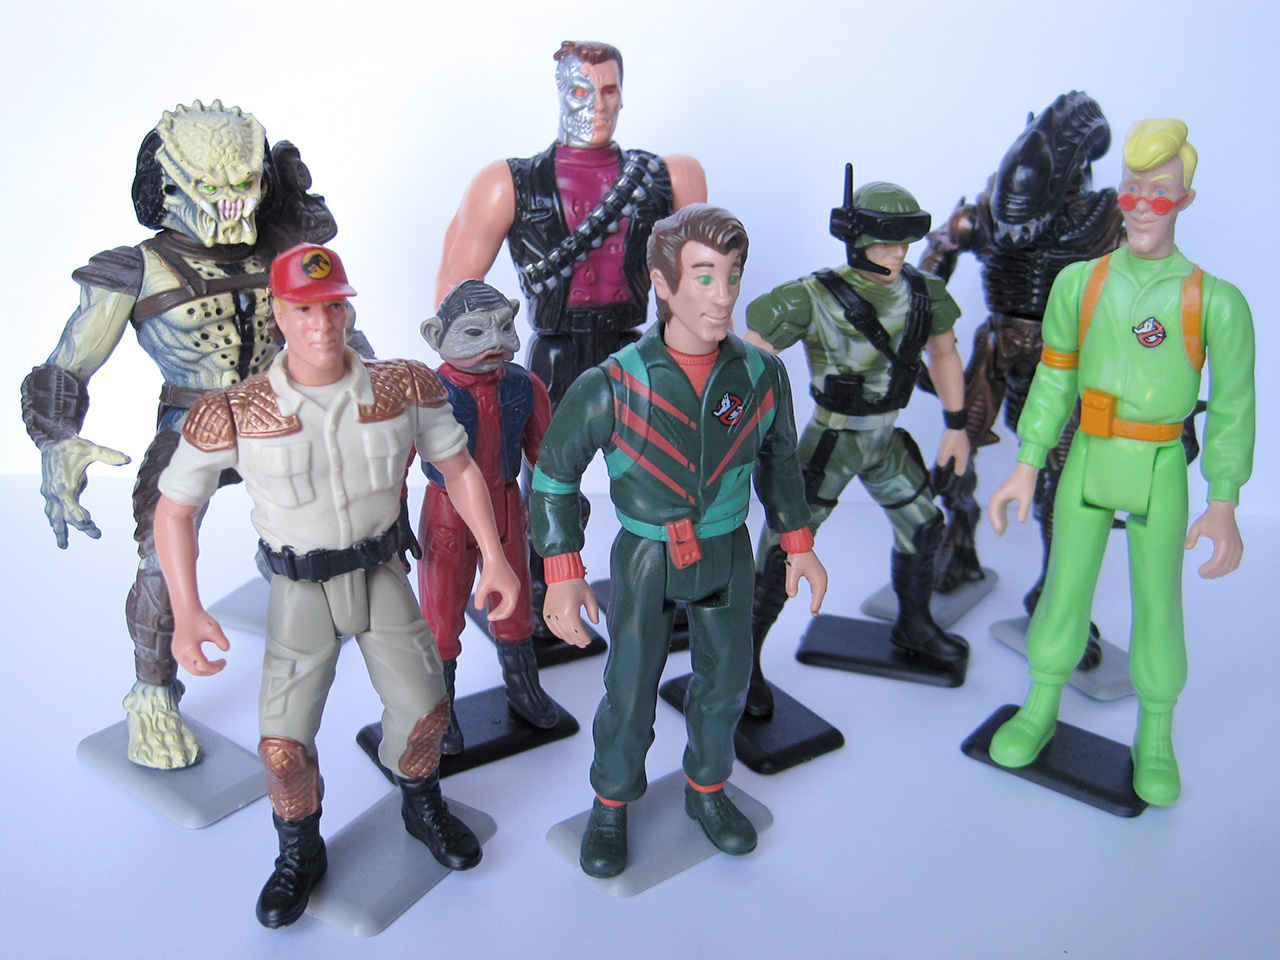 The Earth Vintage Action Figure Stands